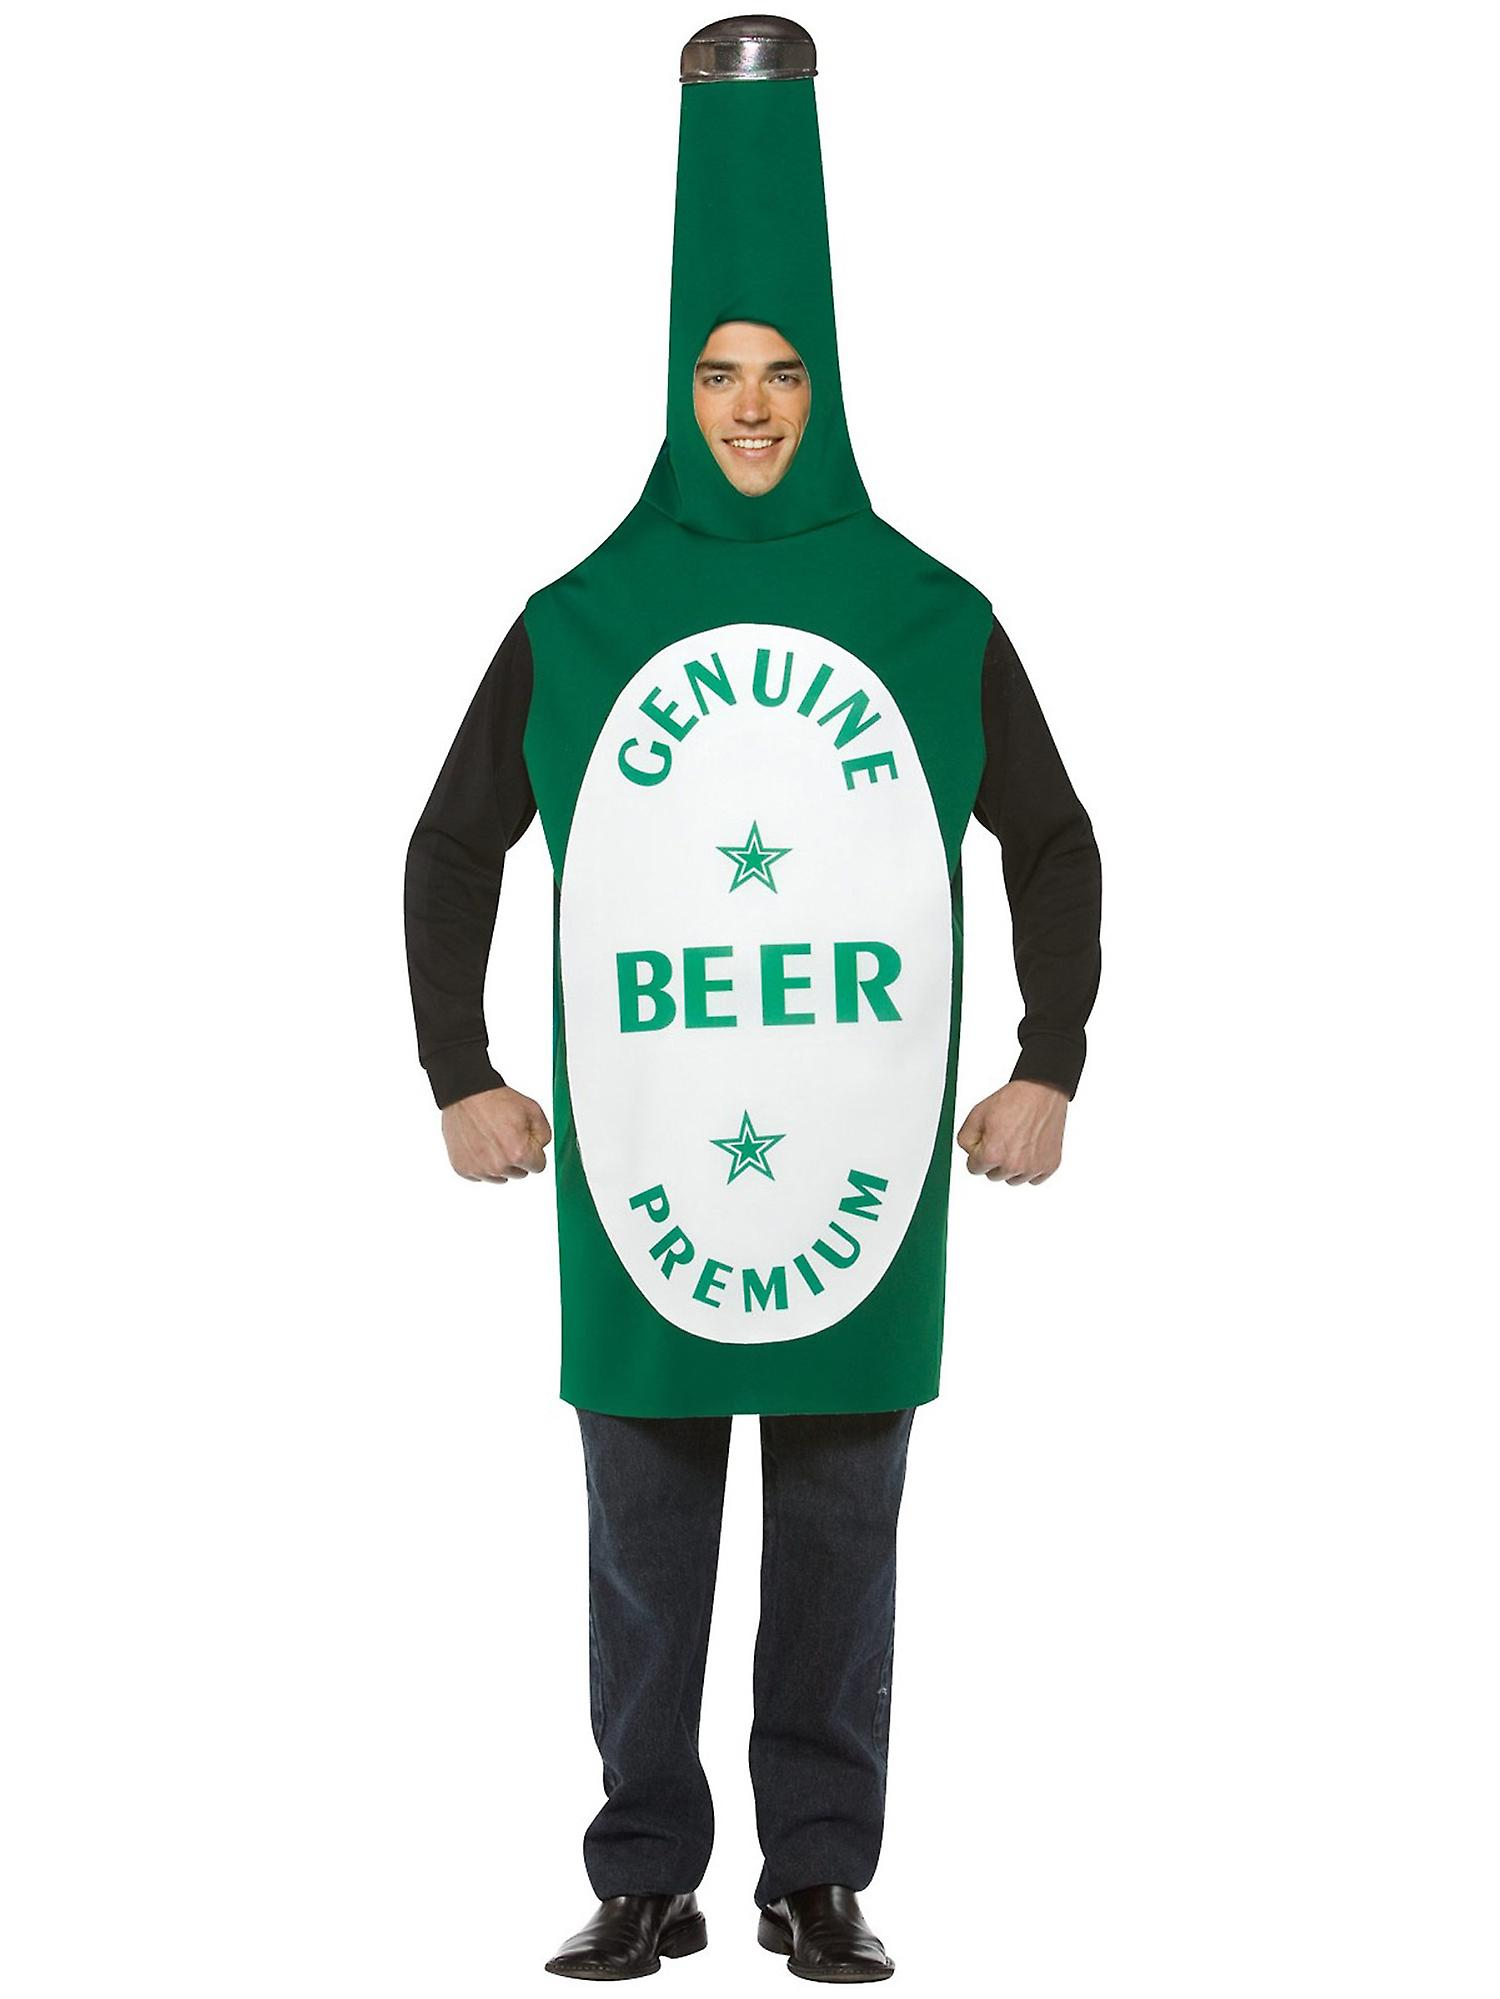 Beer Bottle Drink Oktoberfest German Bavarian Bucks Night Funny Men Costume